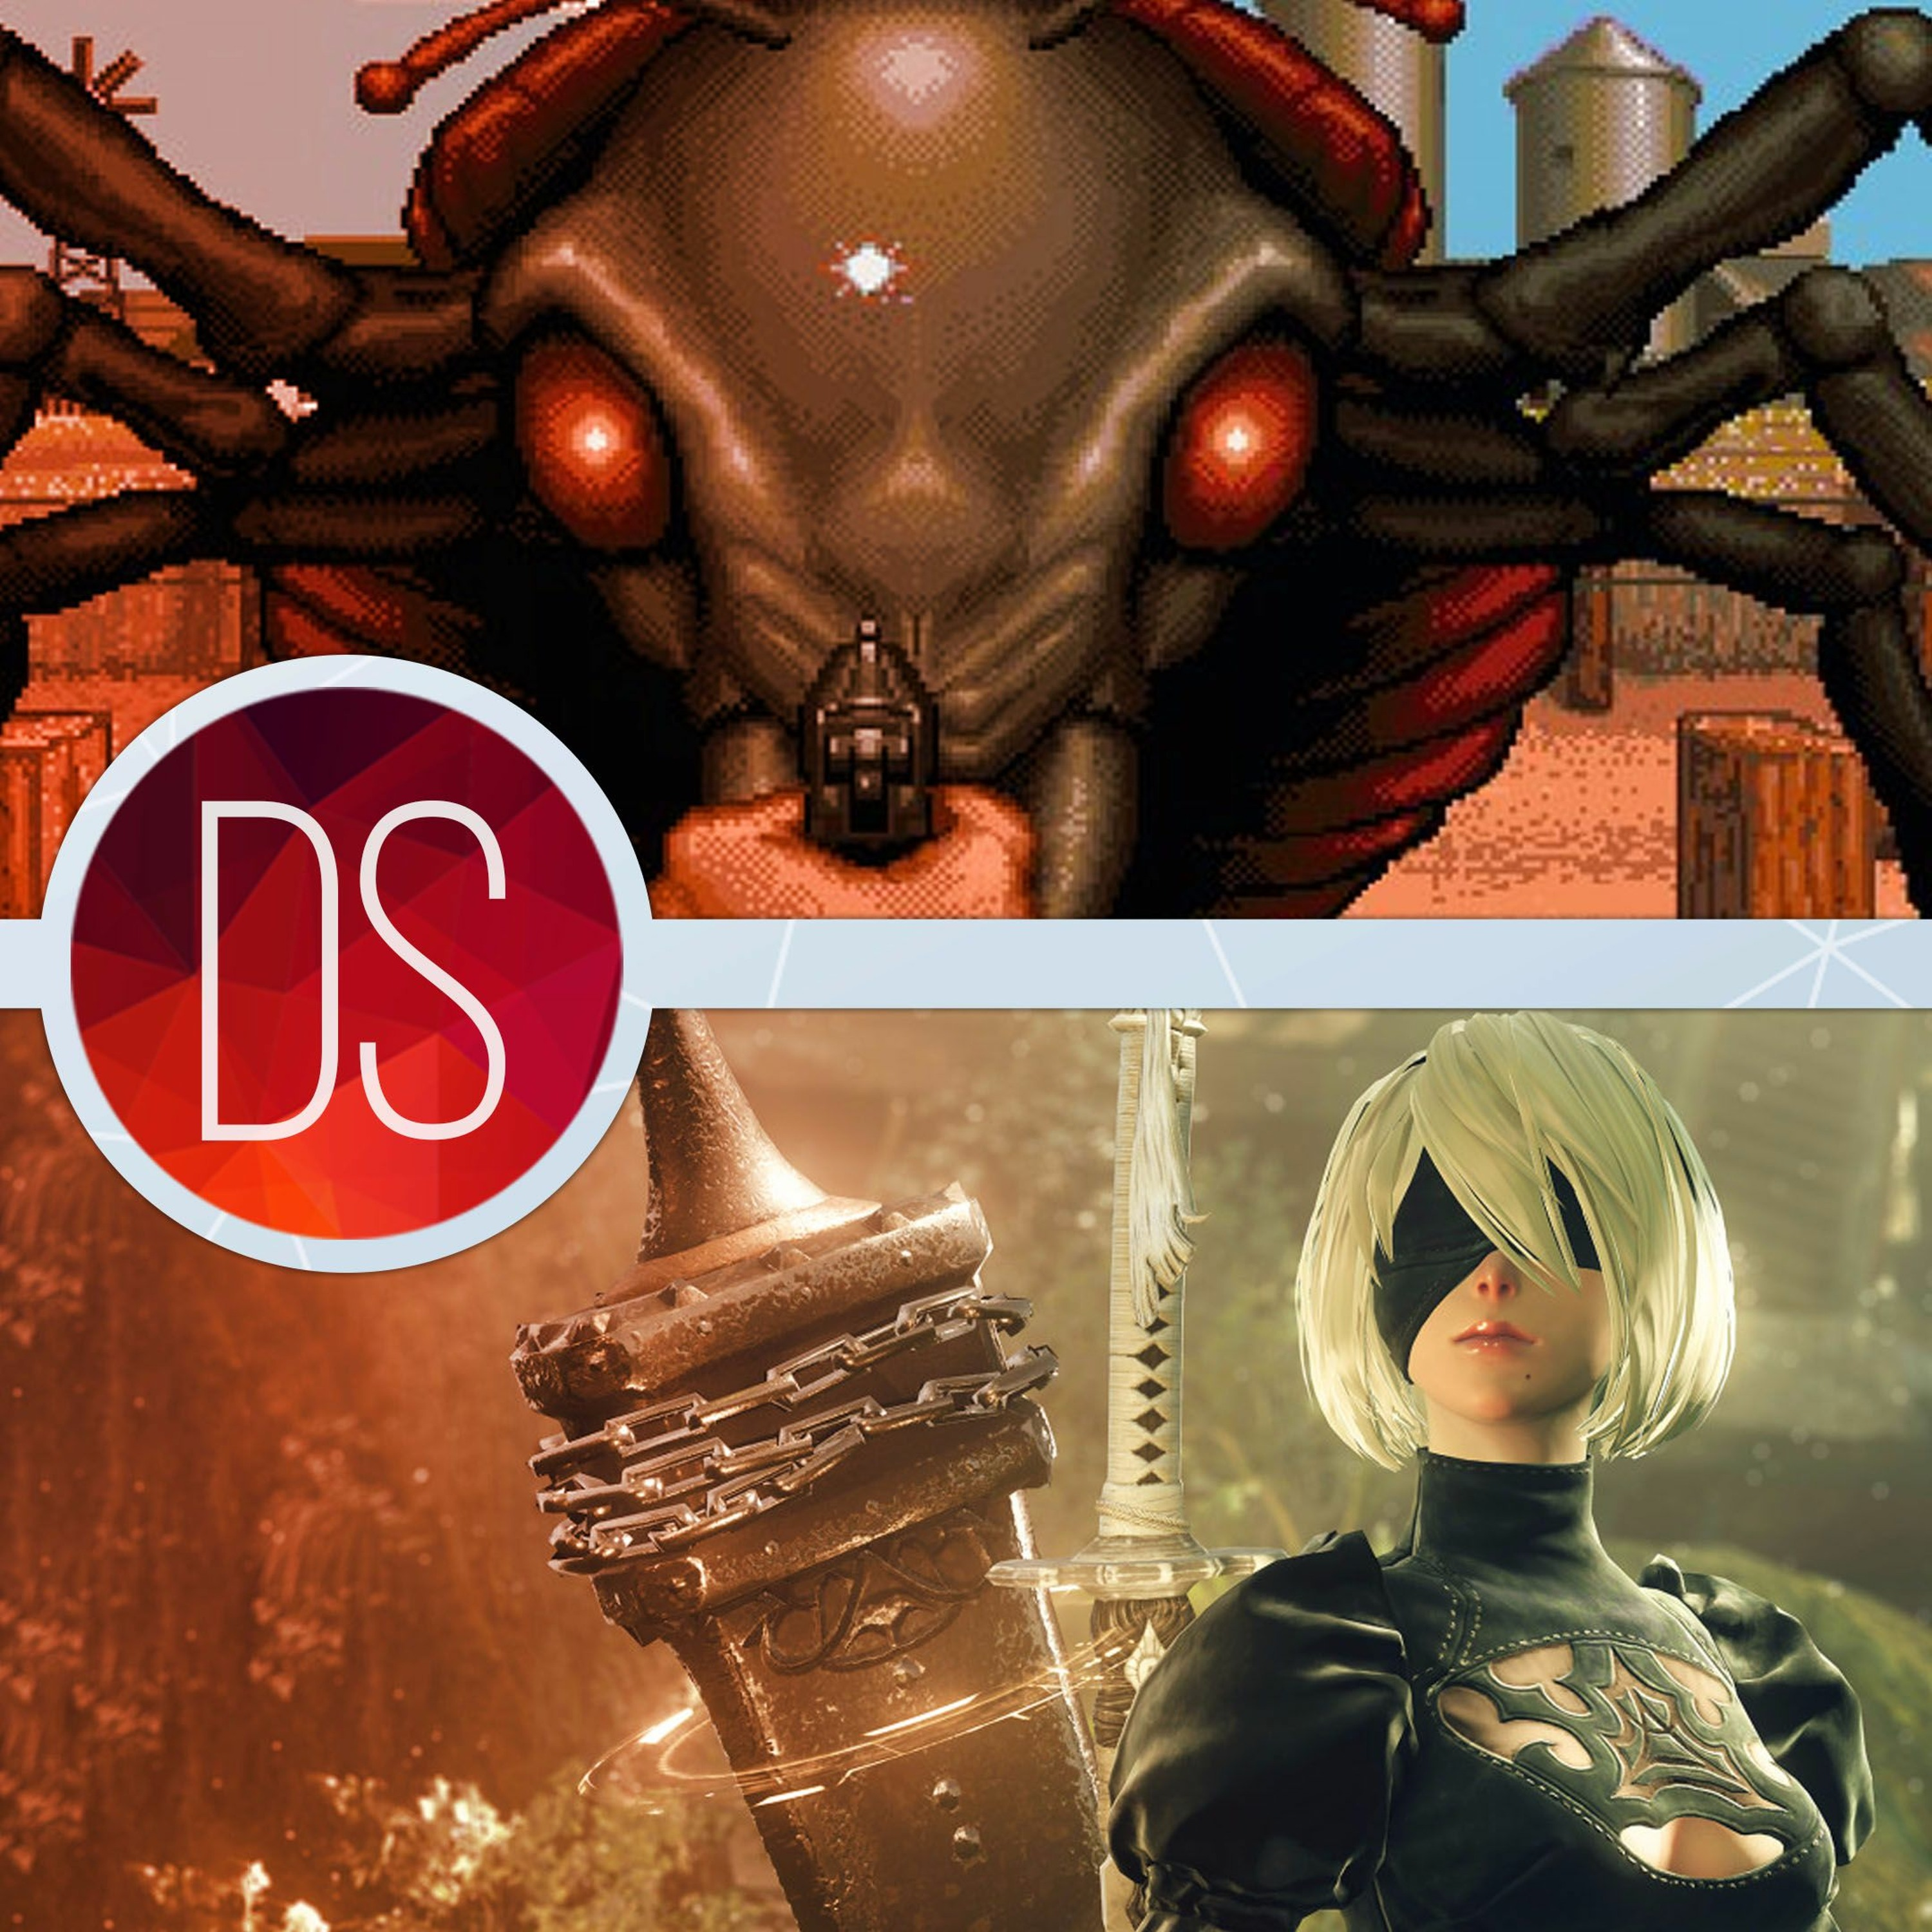 91: Nier Automata, It Came From The Desert